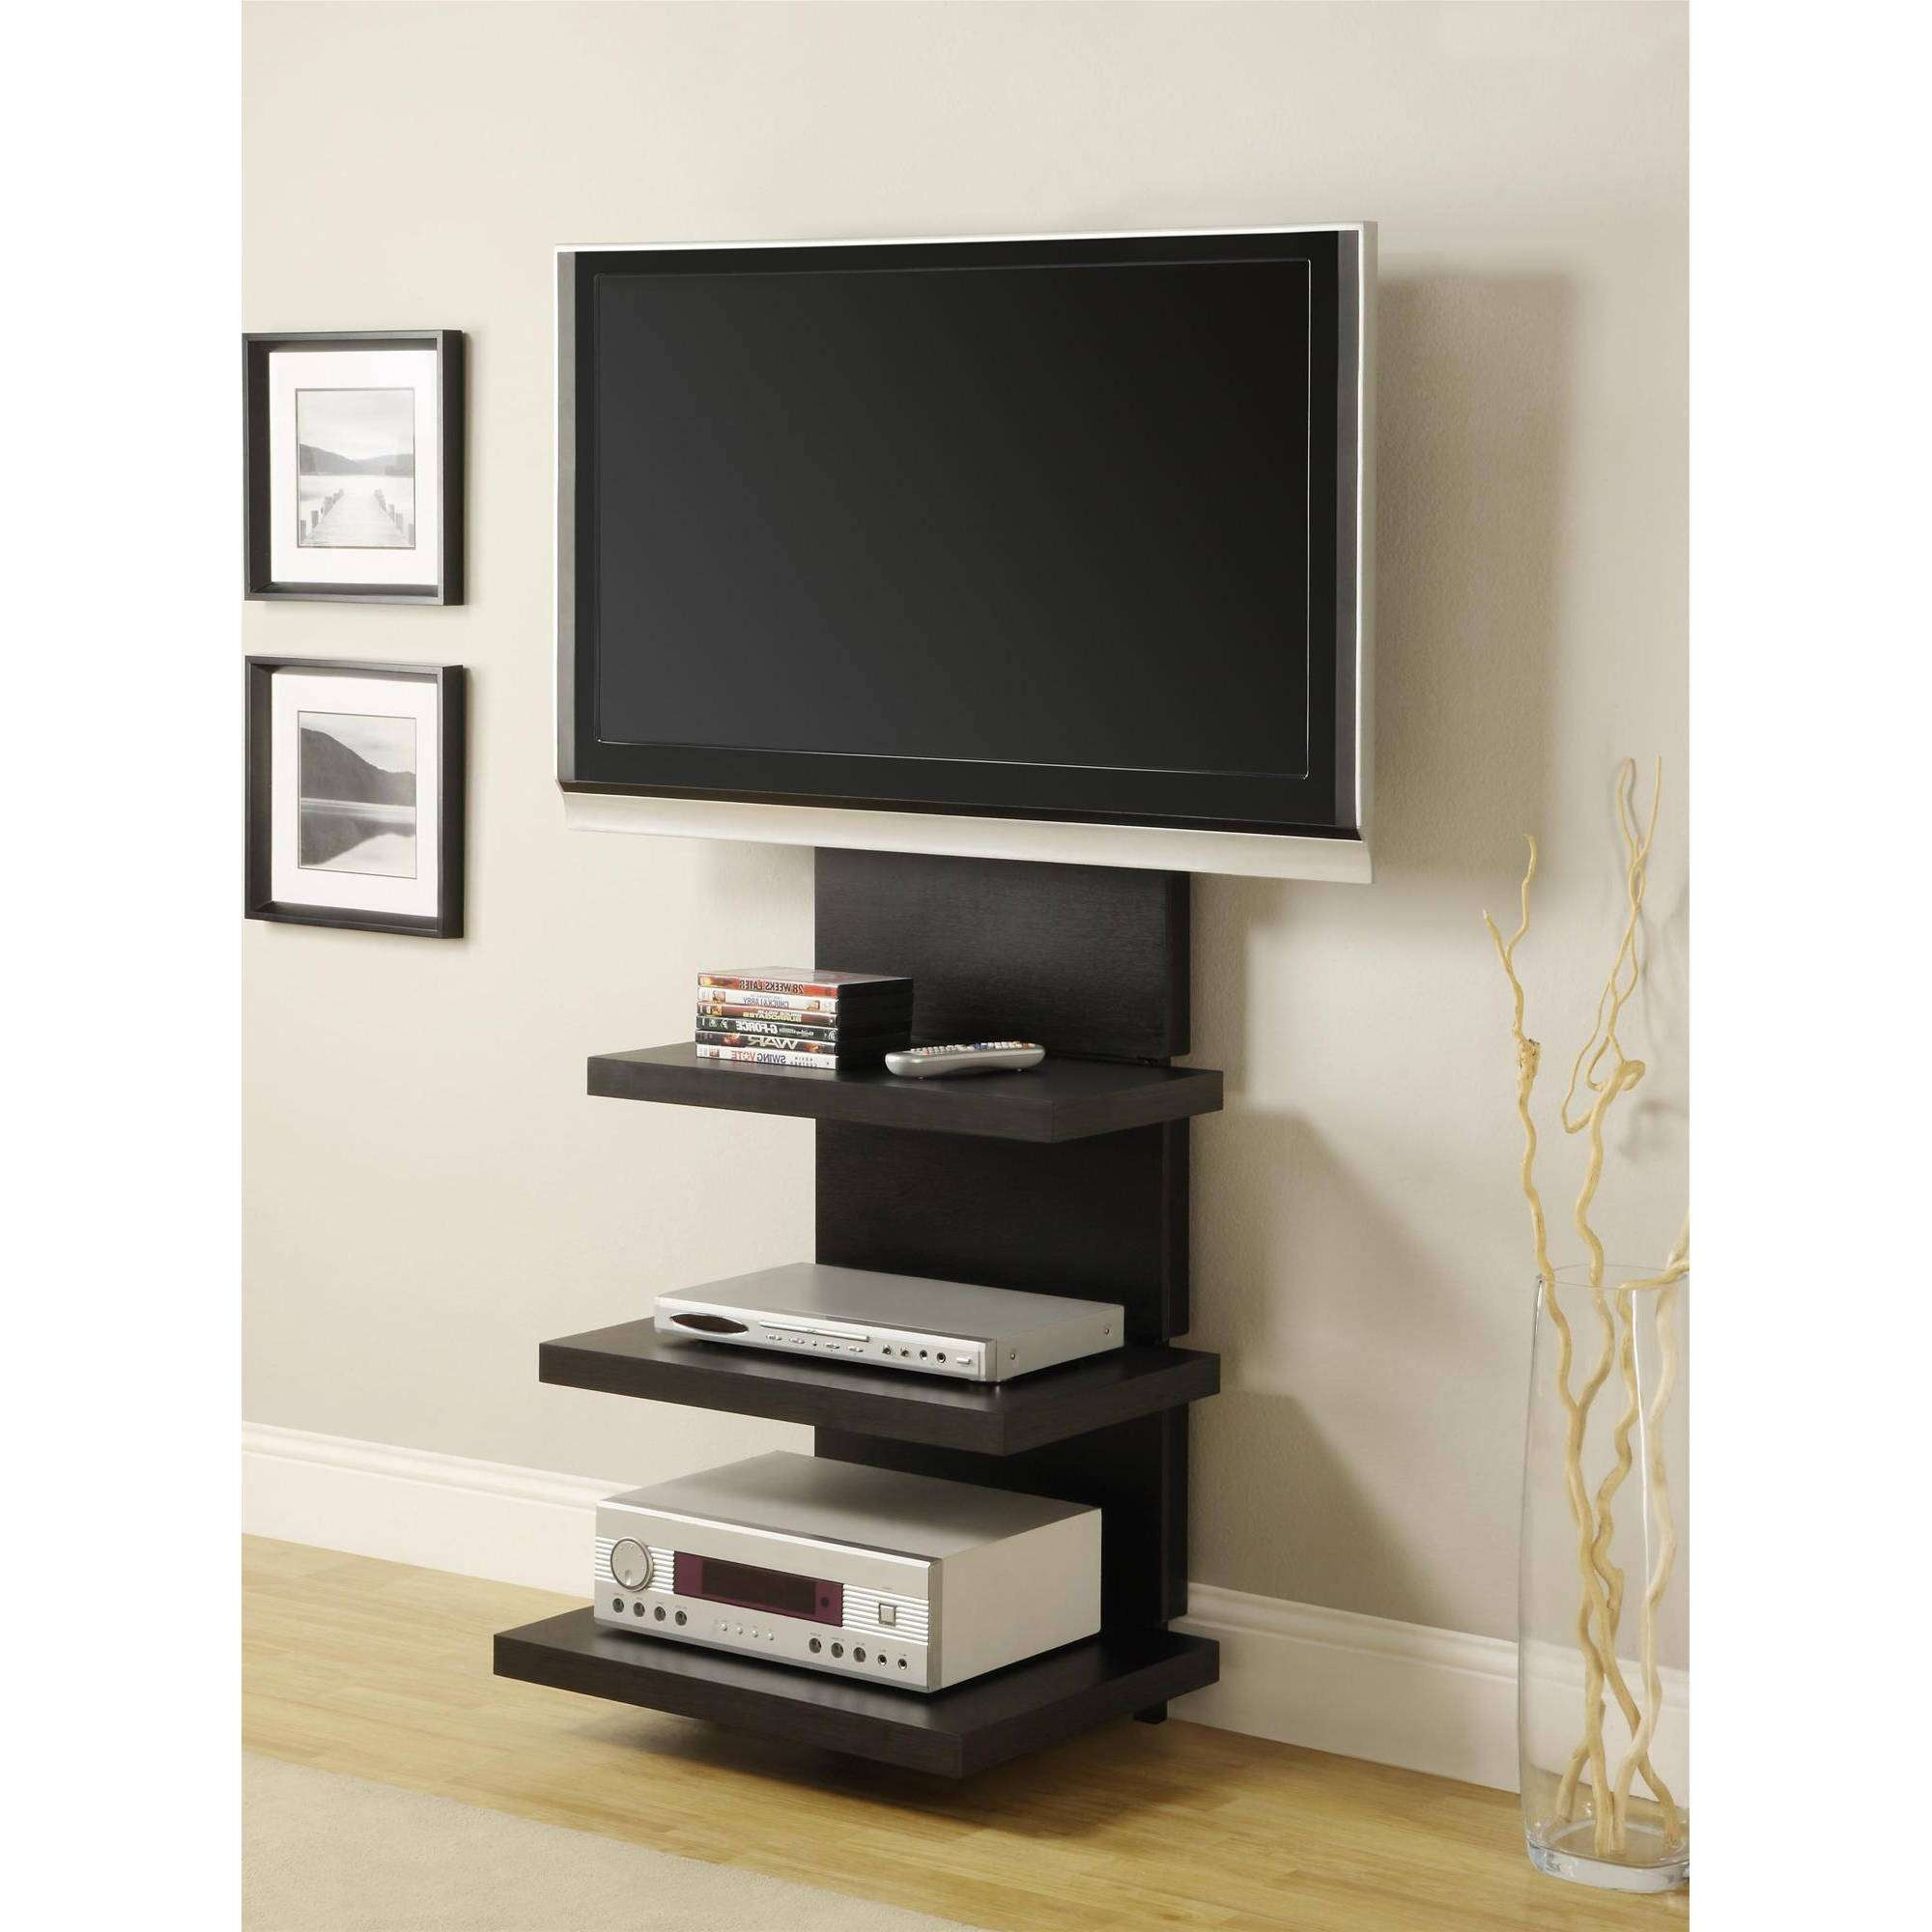 Ameriwood Home Elevation Altramount Tv Stand For Tvs Up To 60 Throughout Tall Skinny Tv Stands (View 10 of 15)